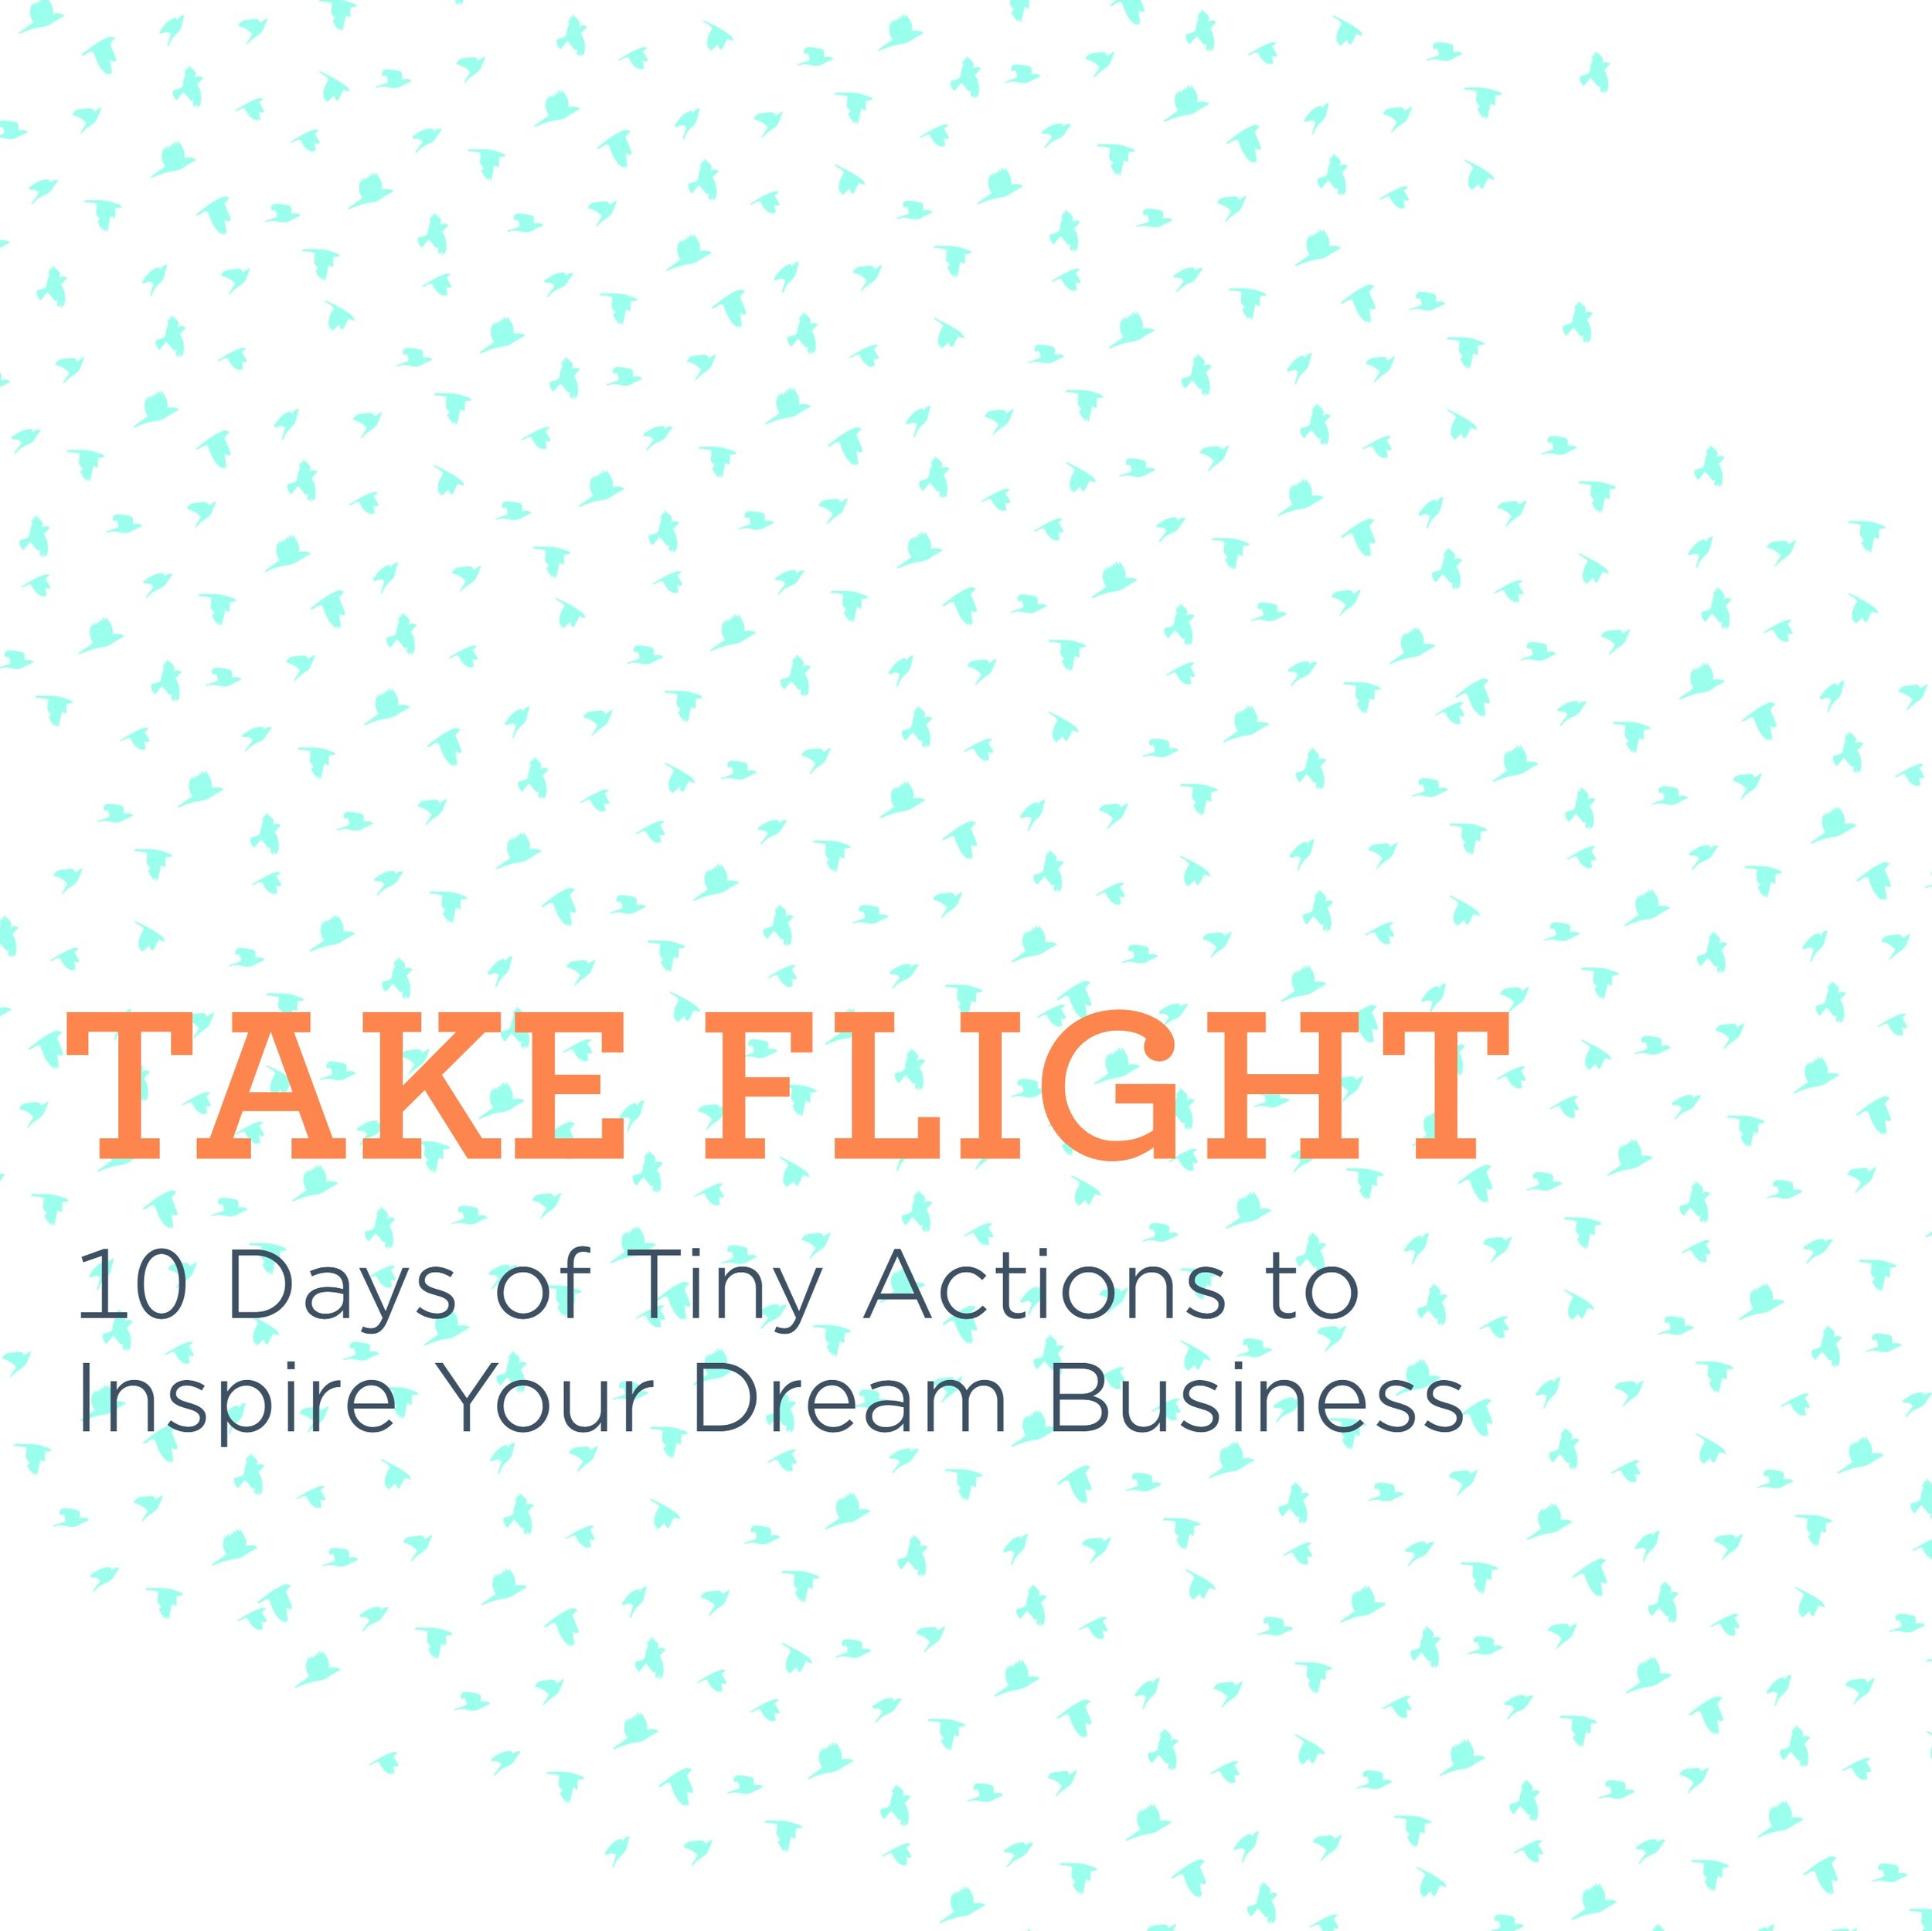 Take Action on Your Business Dreams